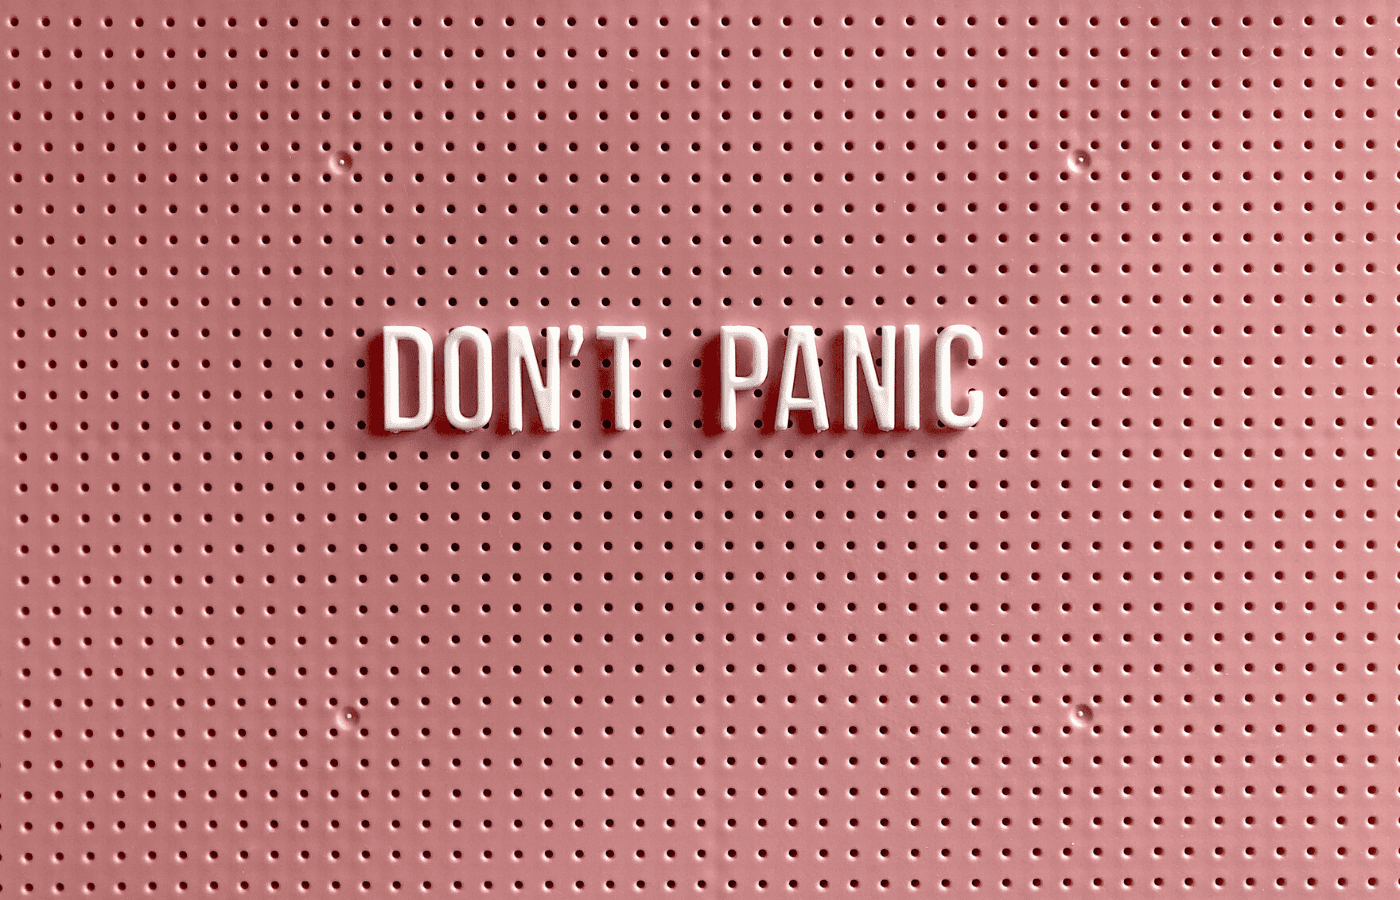 don't panic sign   stay calm